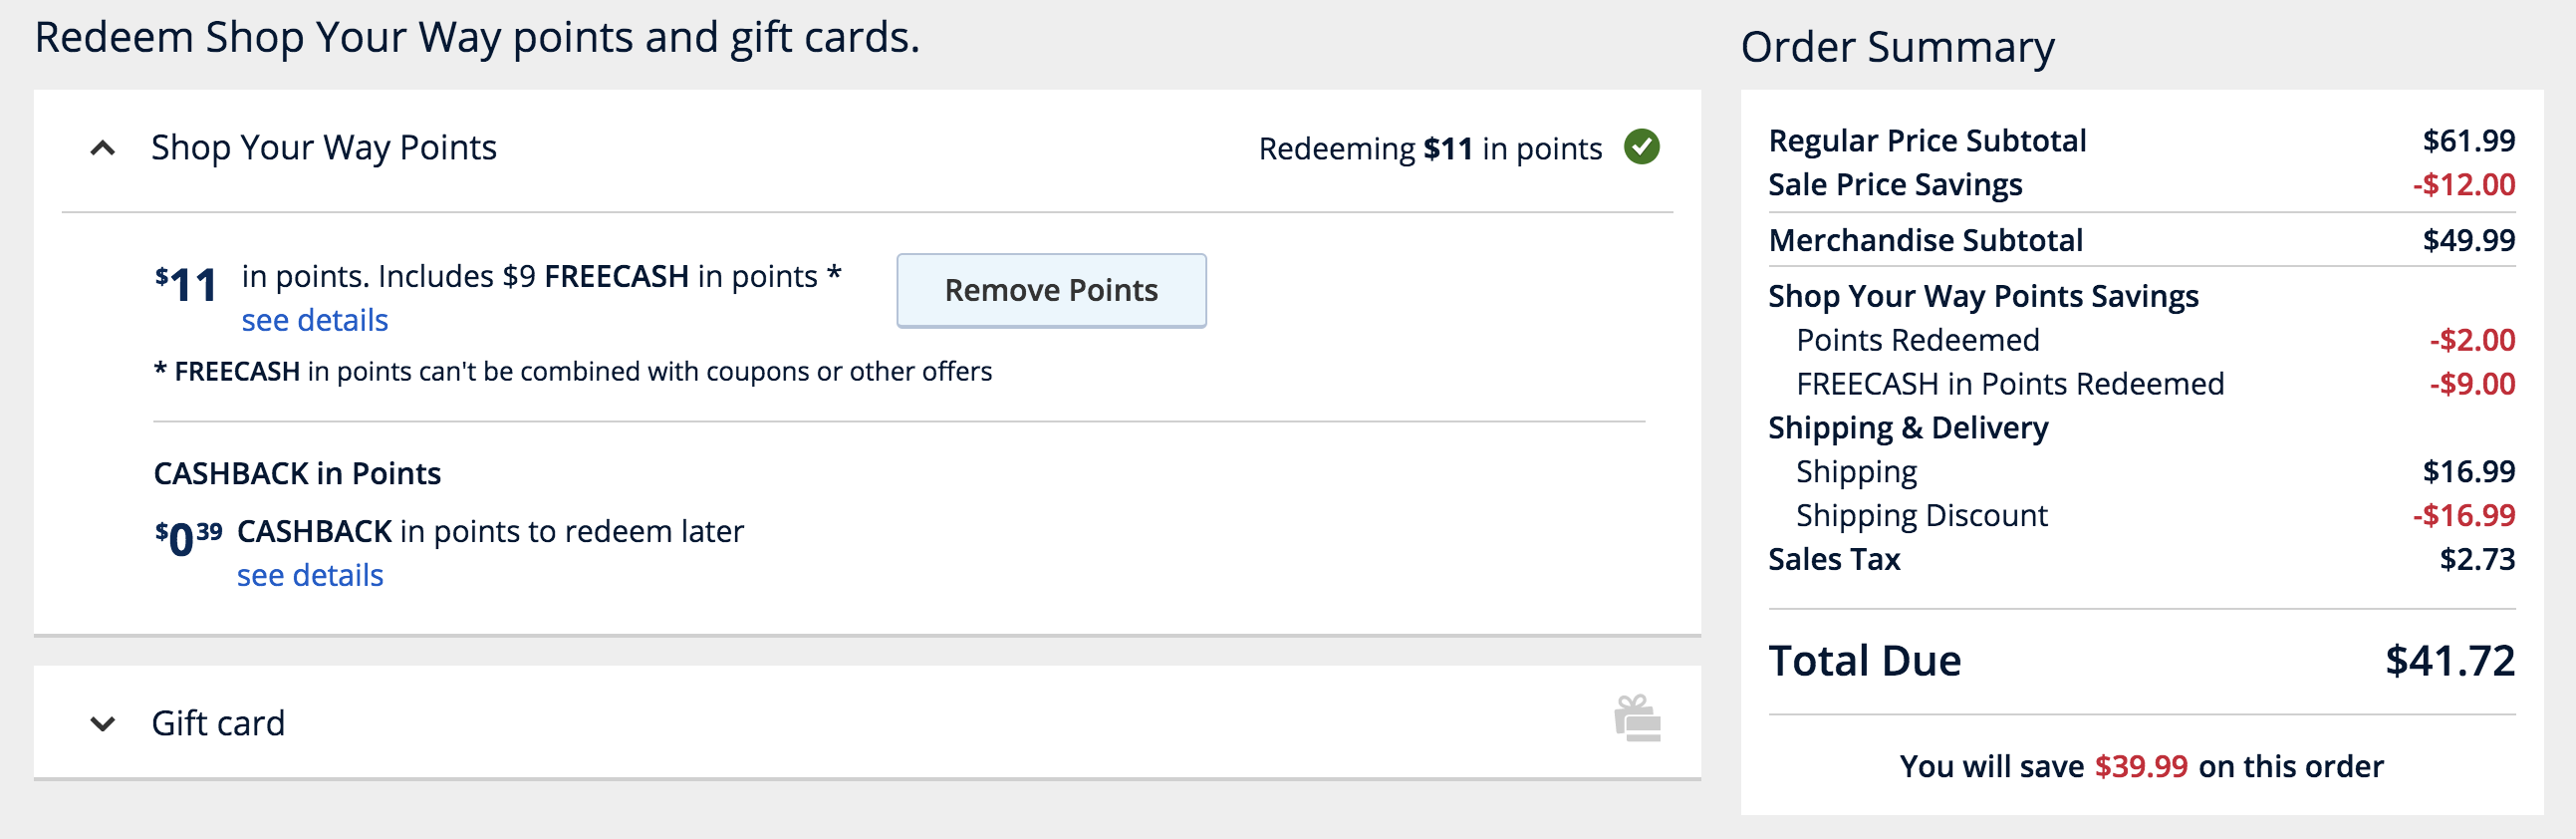 redeeming shop your way points